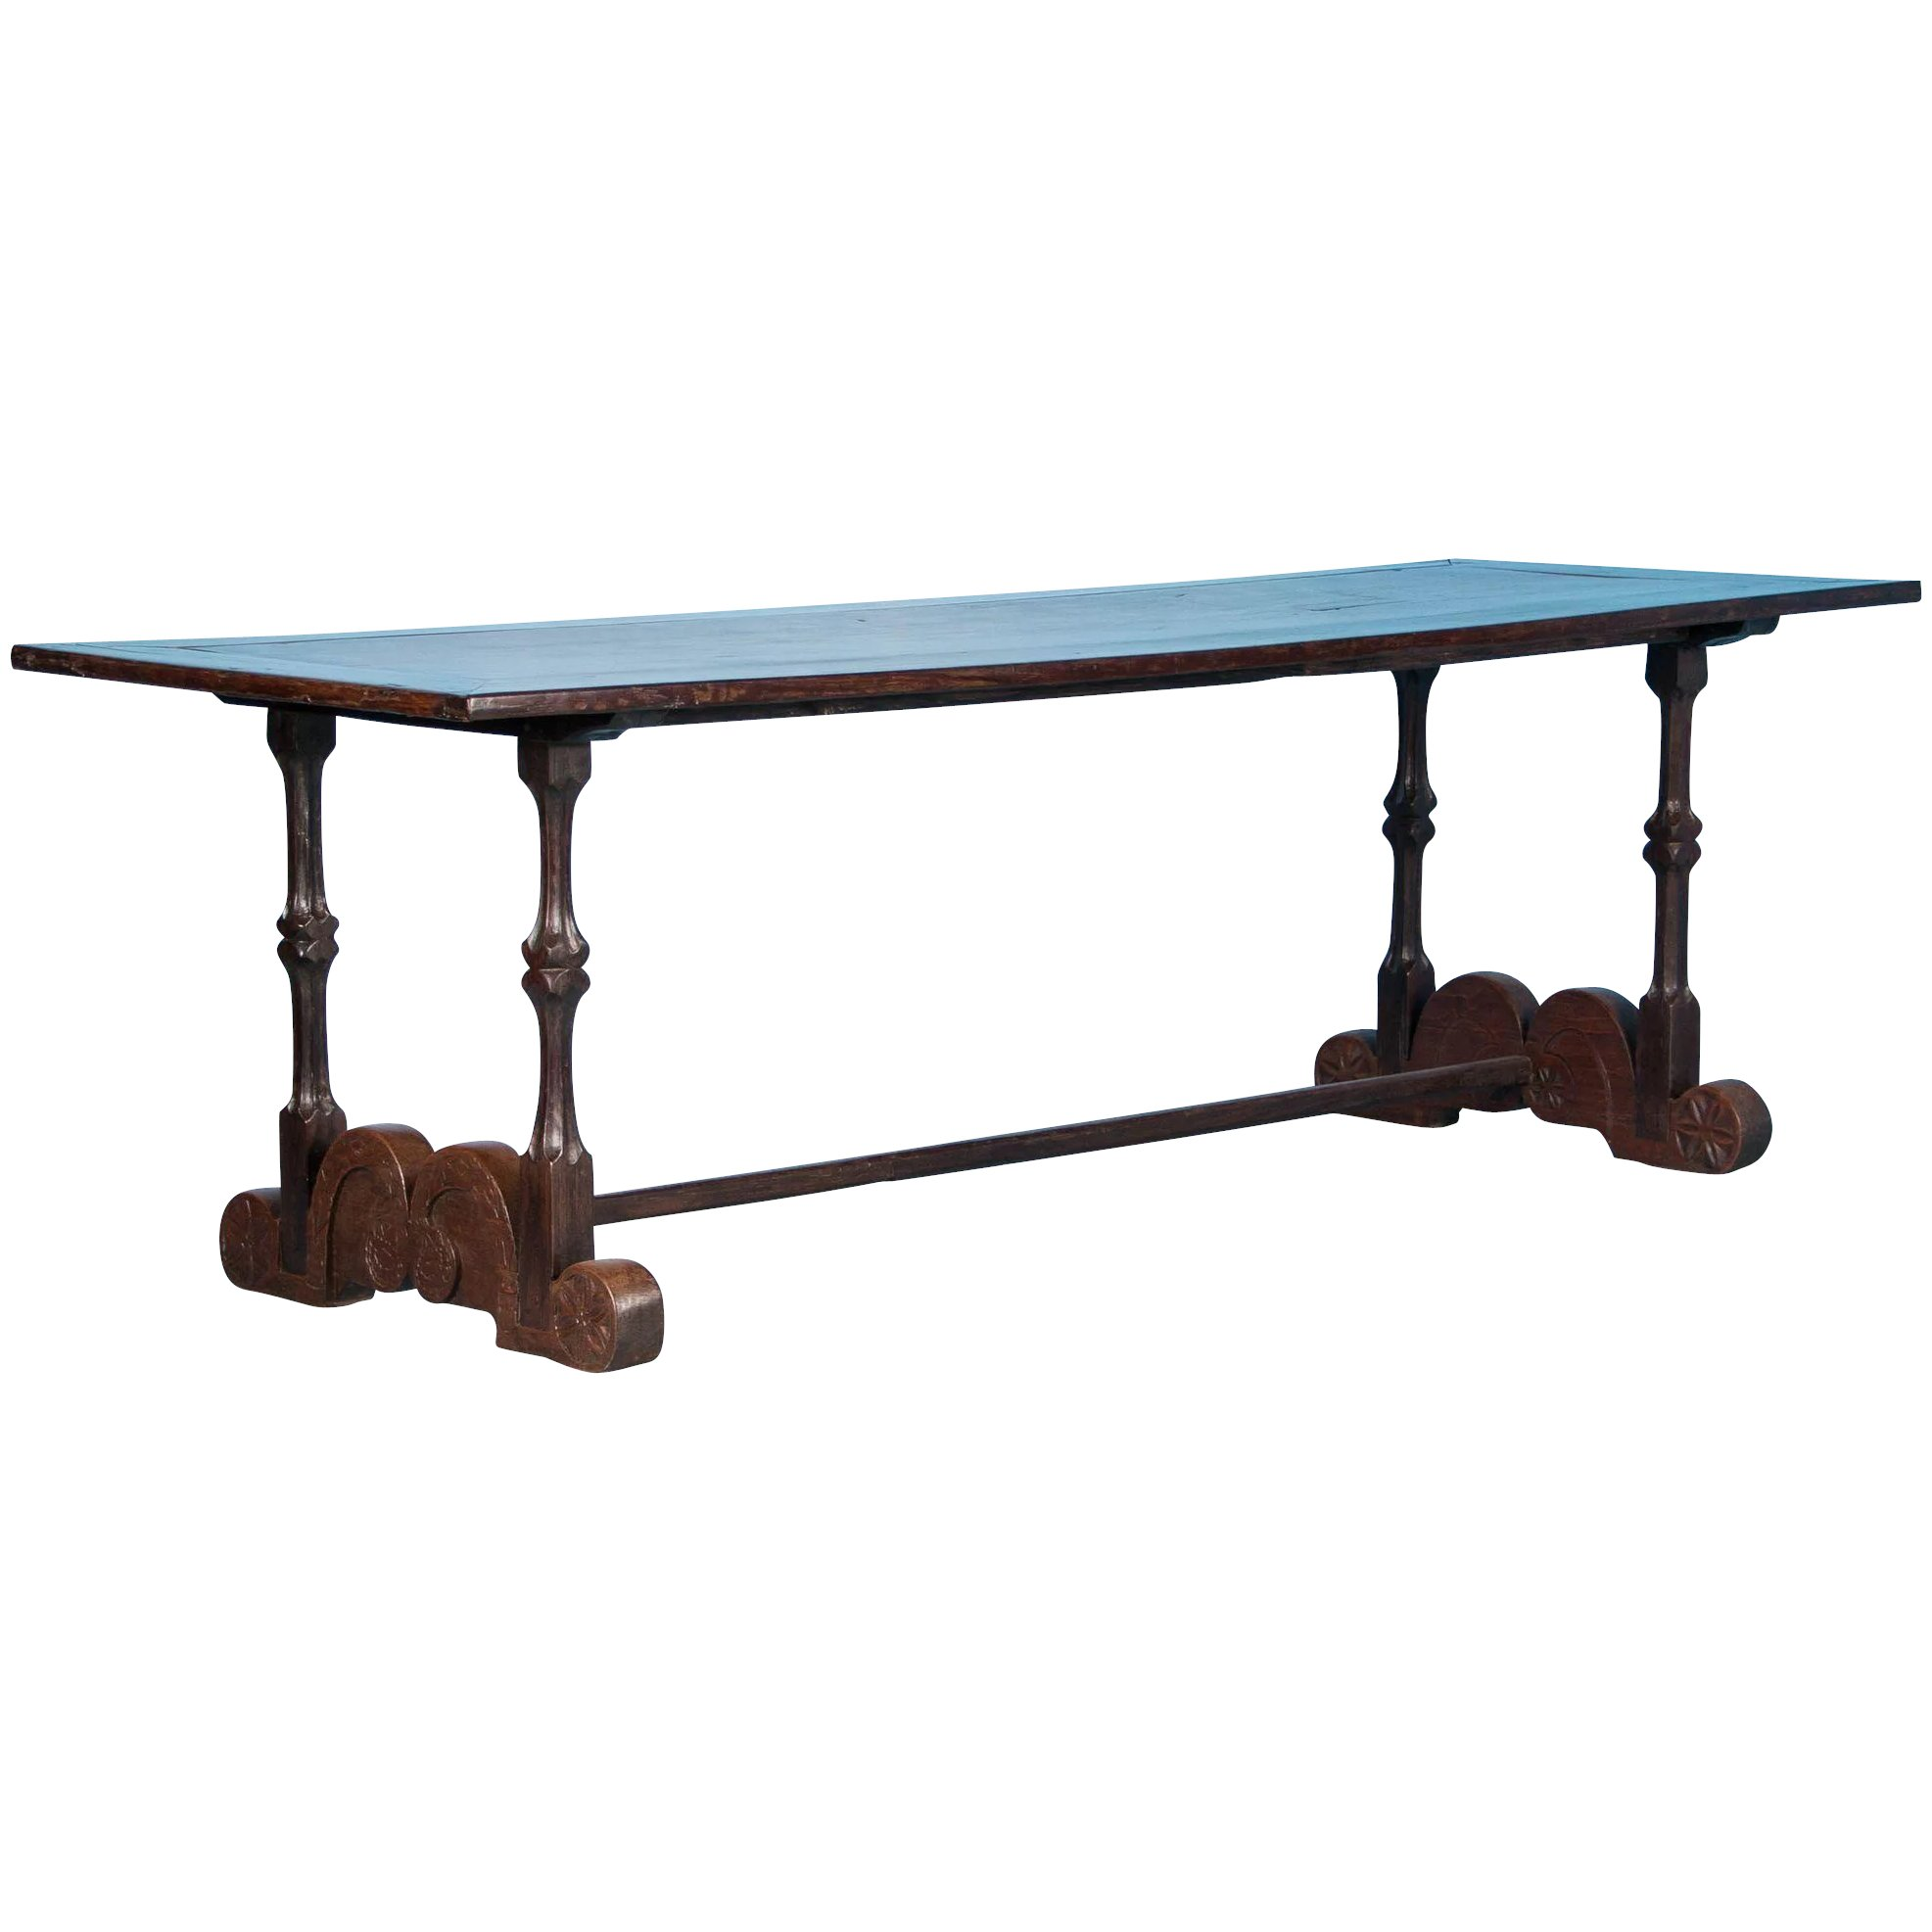 Kitchen Island Table Philippines: Antique Spanish Colonial Dining Table From The Philippines